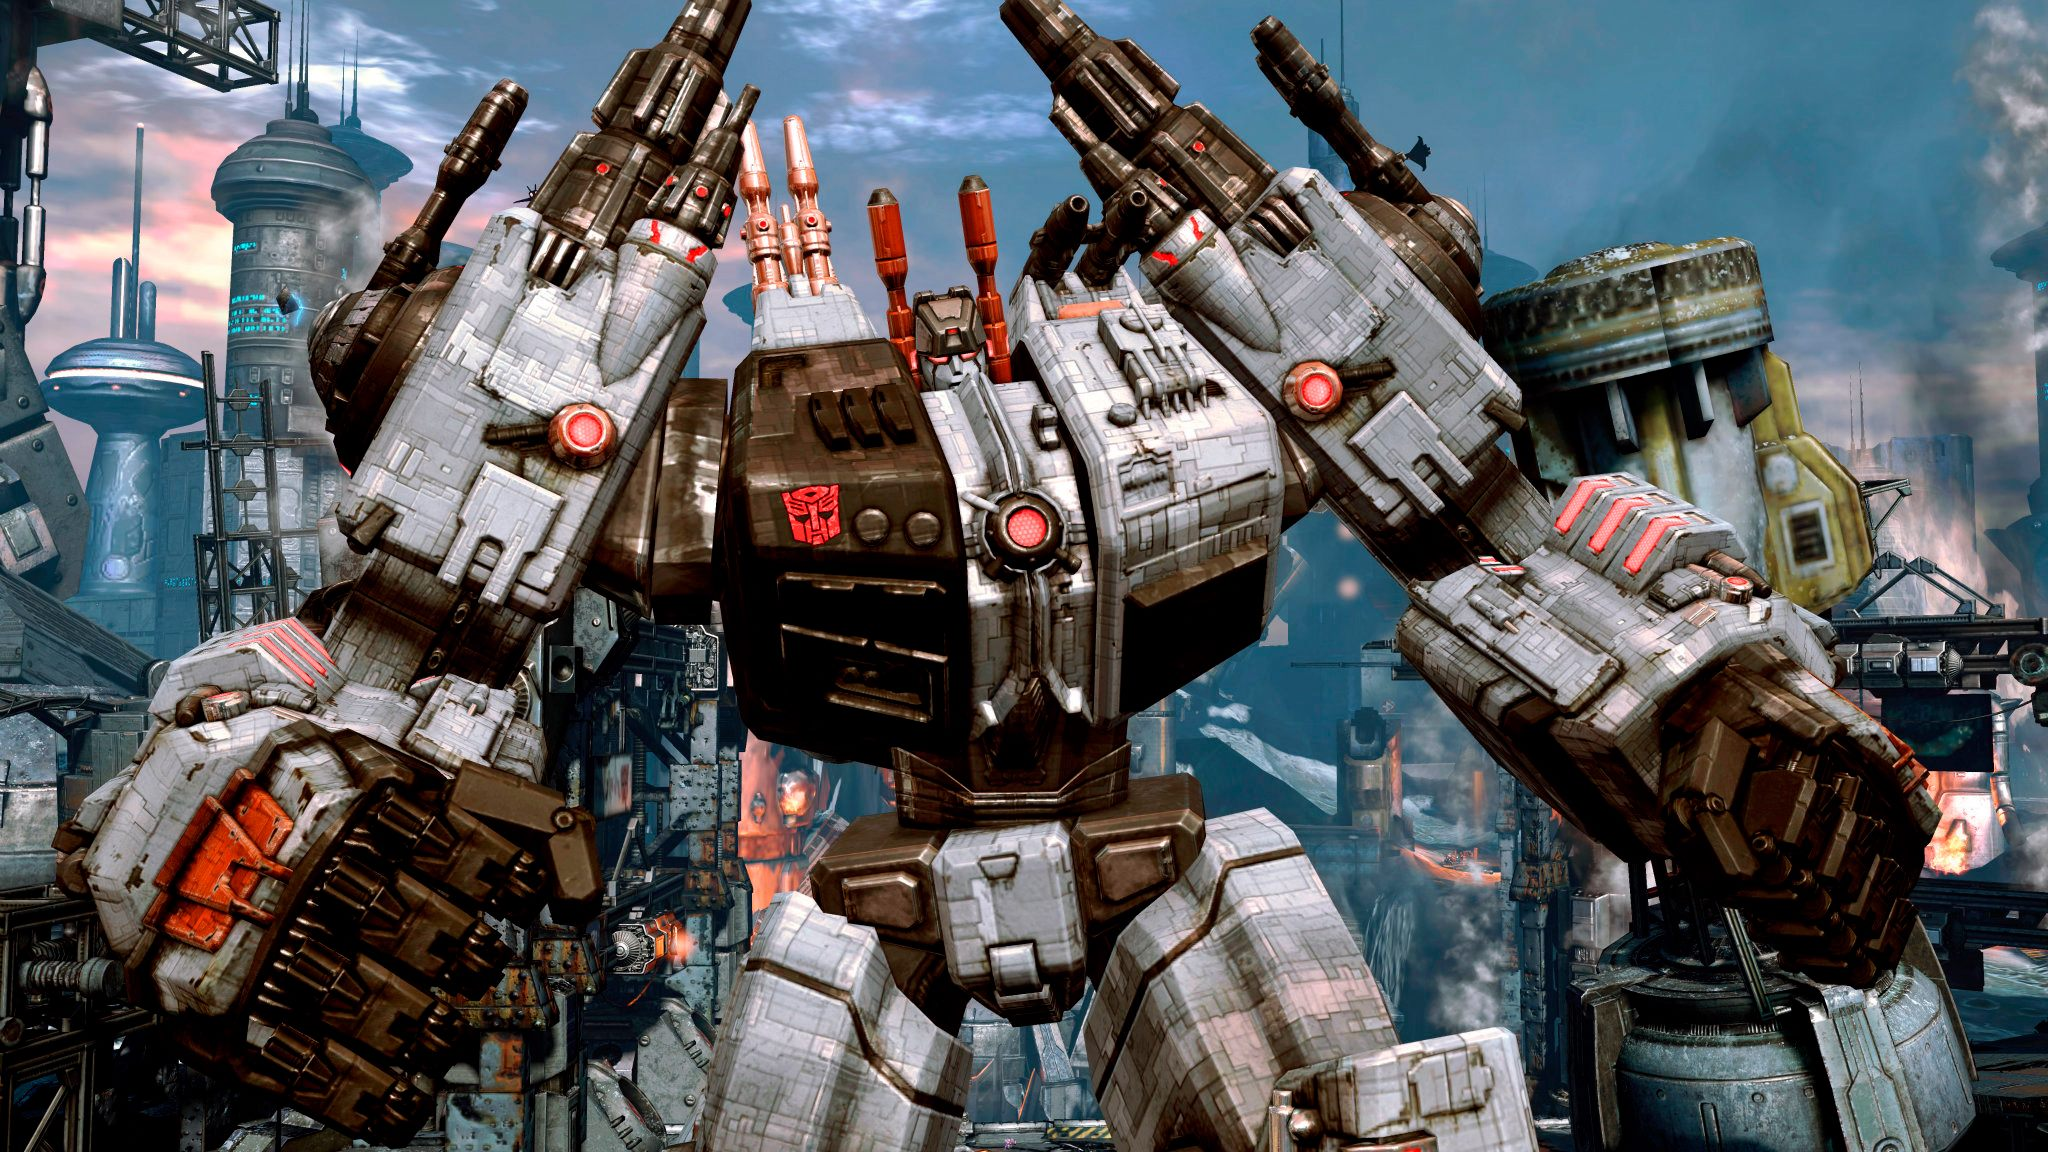 image - metroplex-transformers-fall-of-cybertron-5